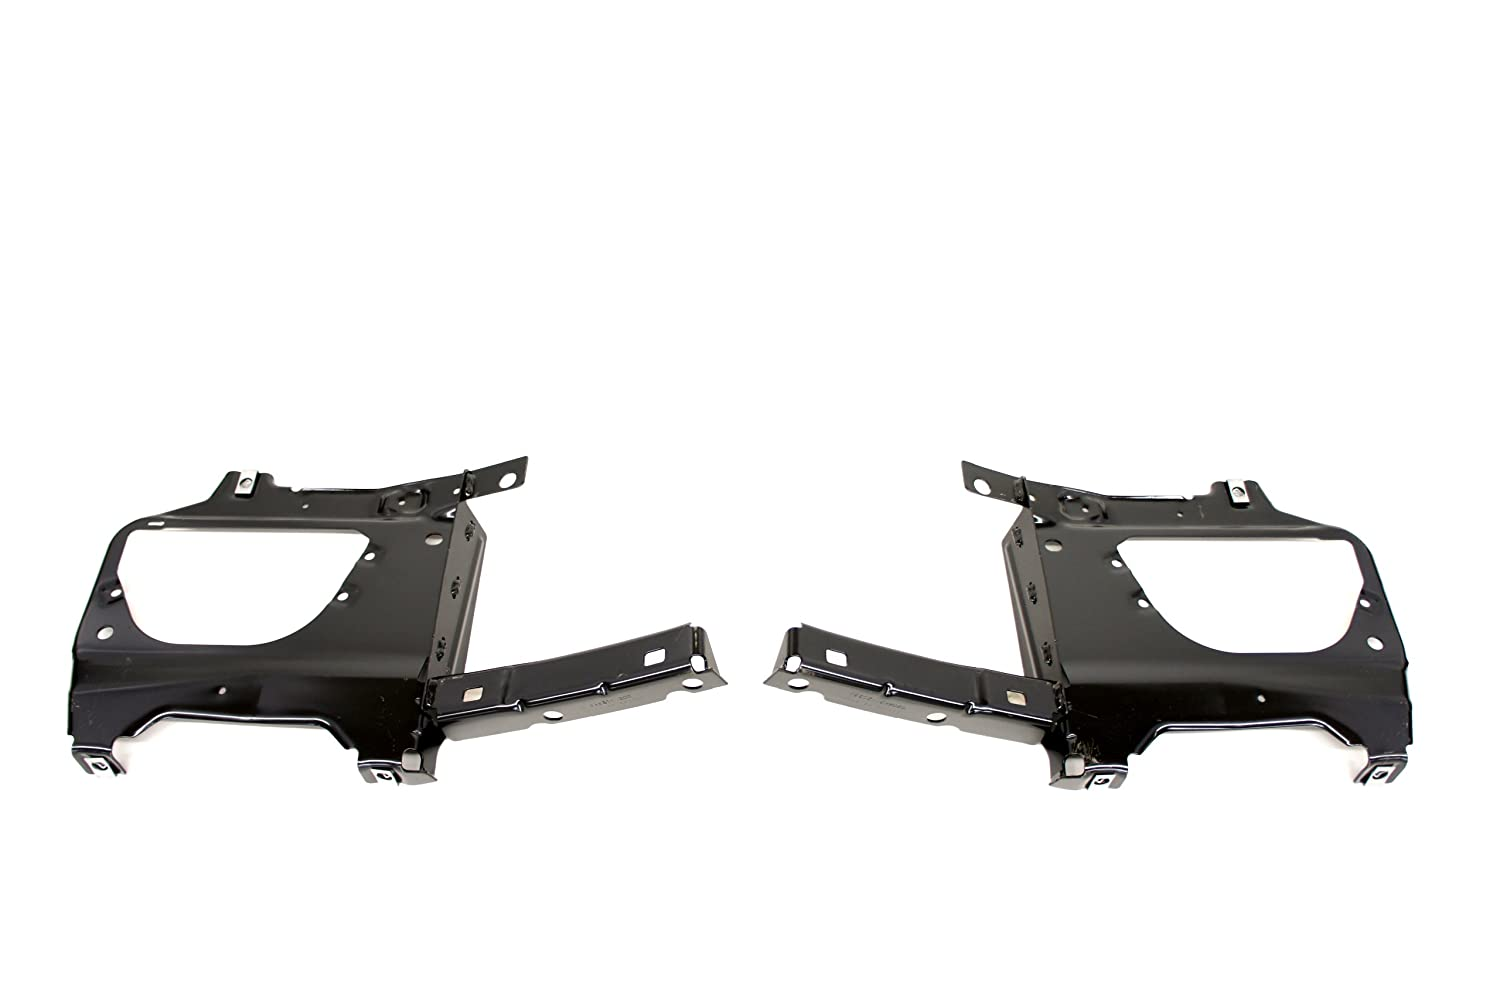 Genuine Chrysler Parts 68064329AB Front Bumper Bracket Set